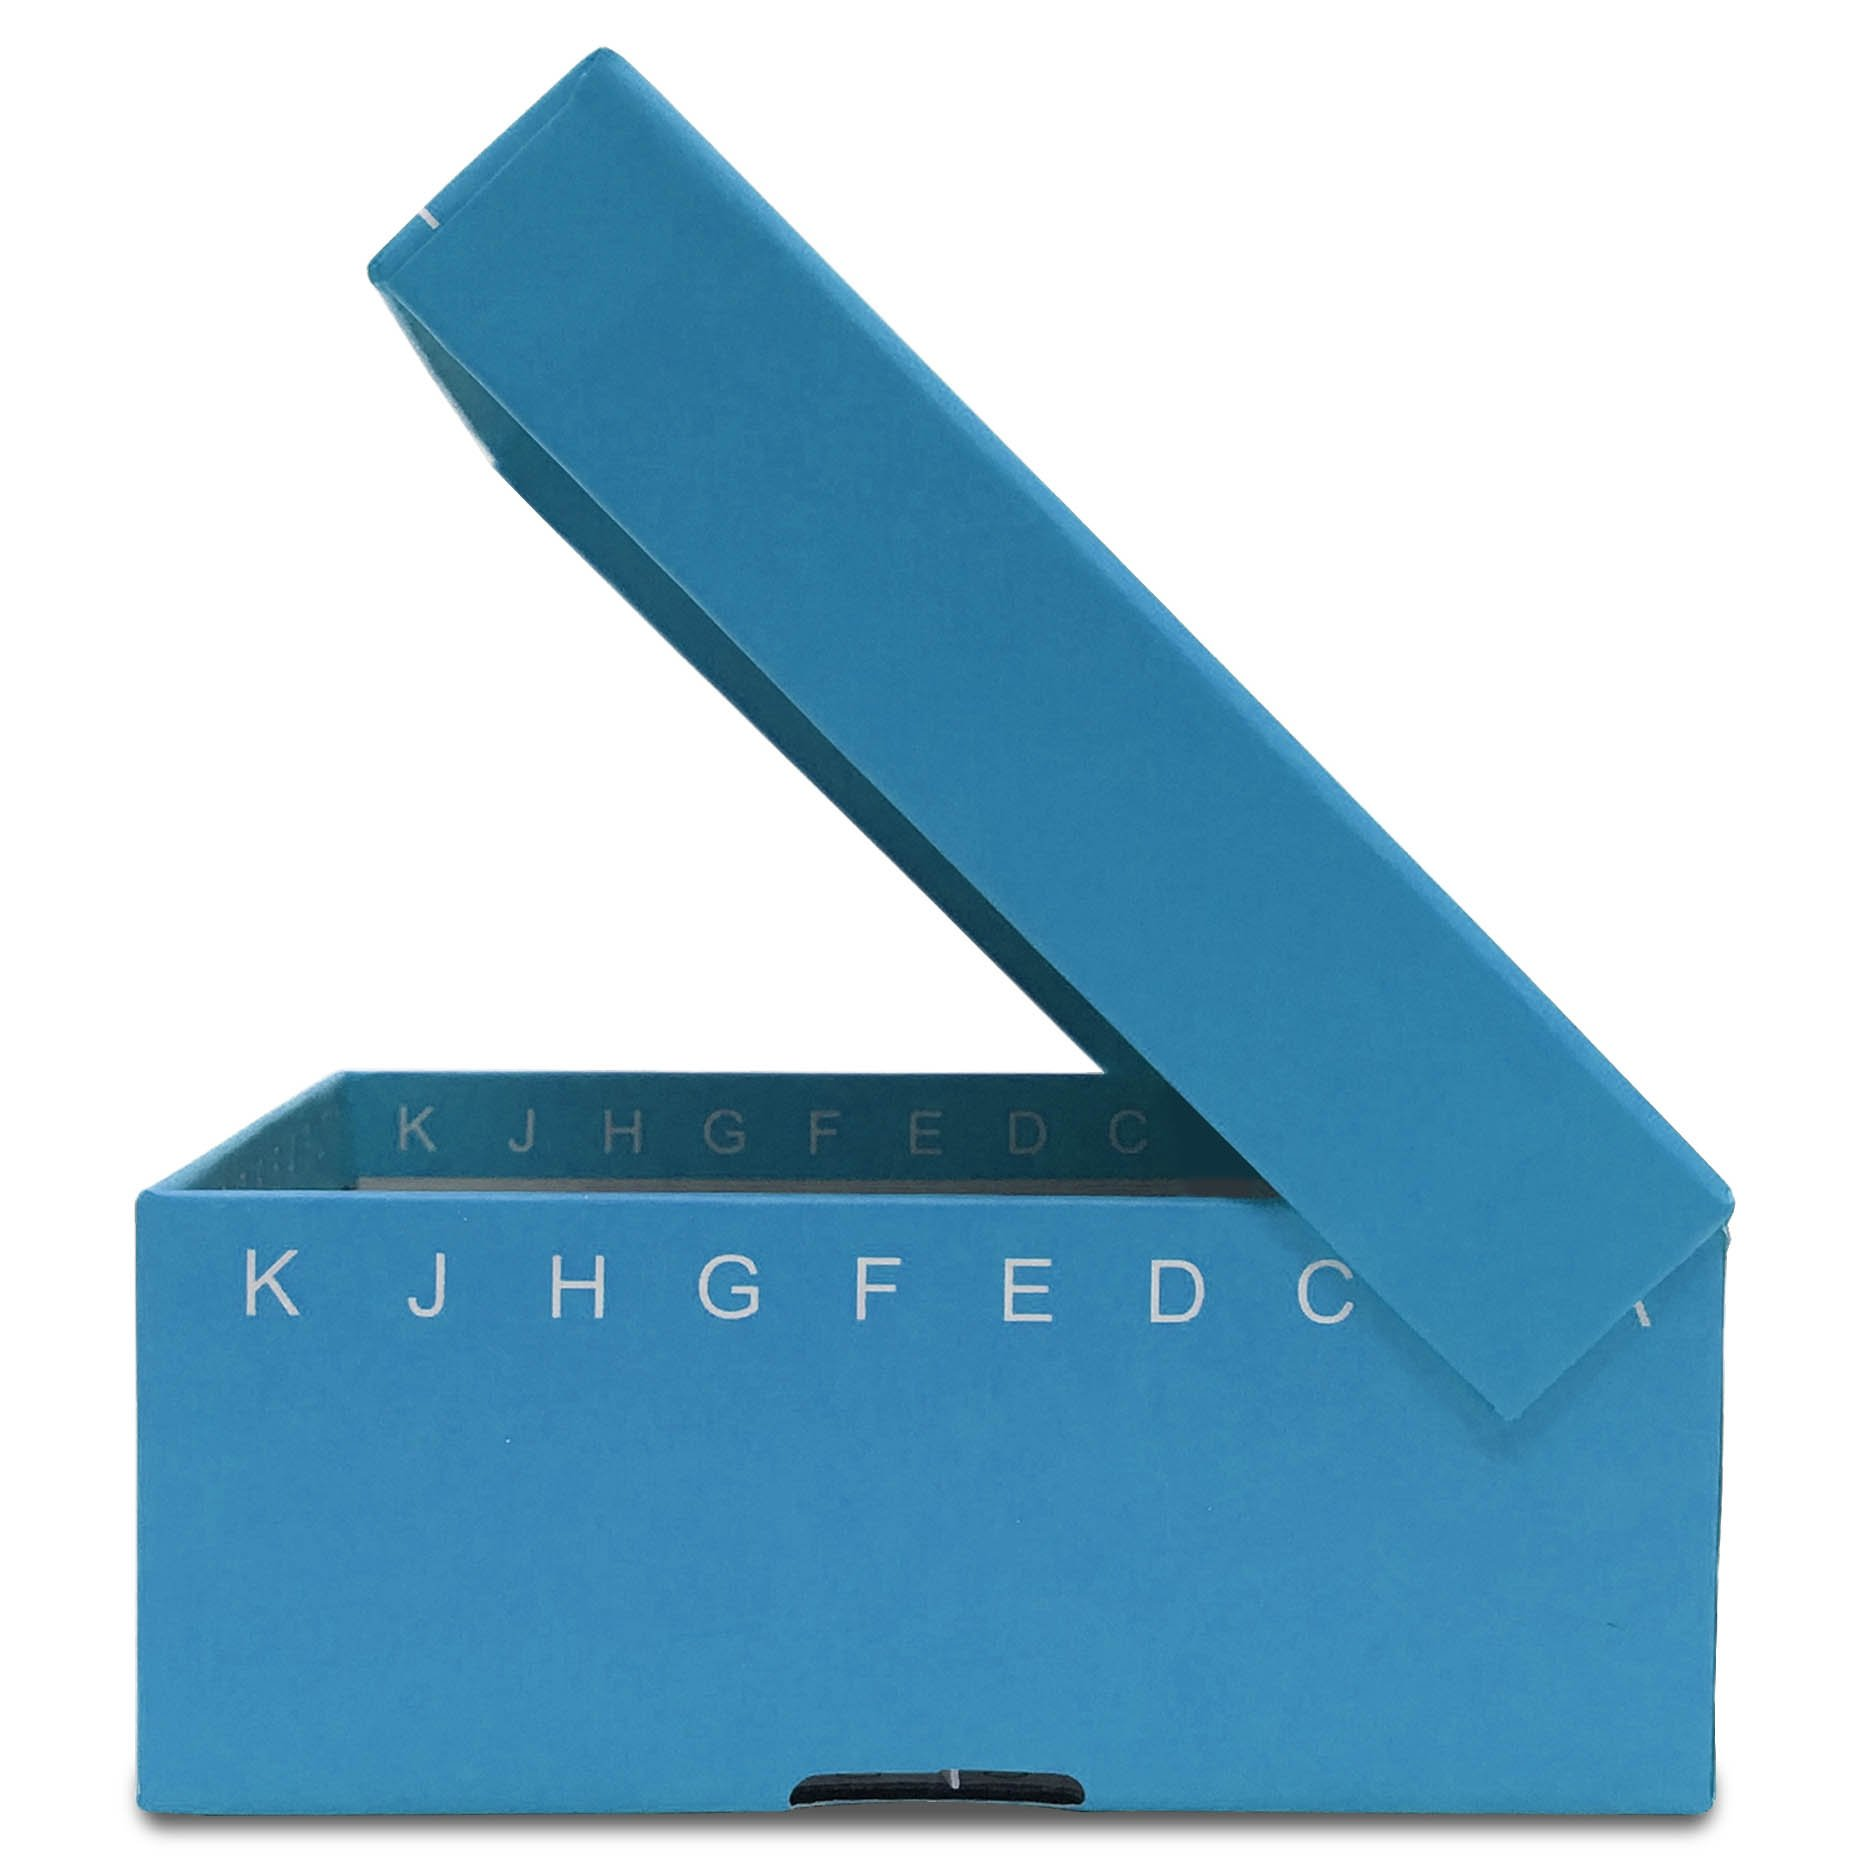 FlipTop Cardboard Freezer Box 100-Place with Attached Hinged Lid - Blue (Case of 50)